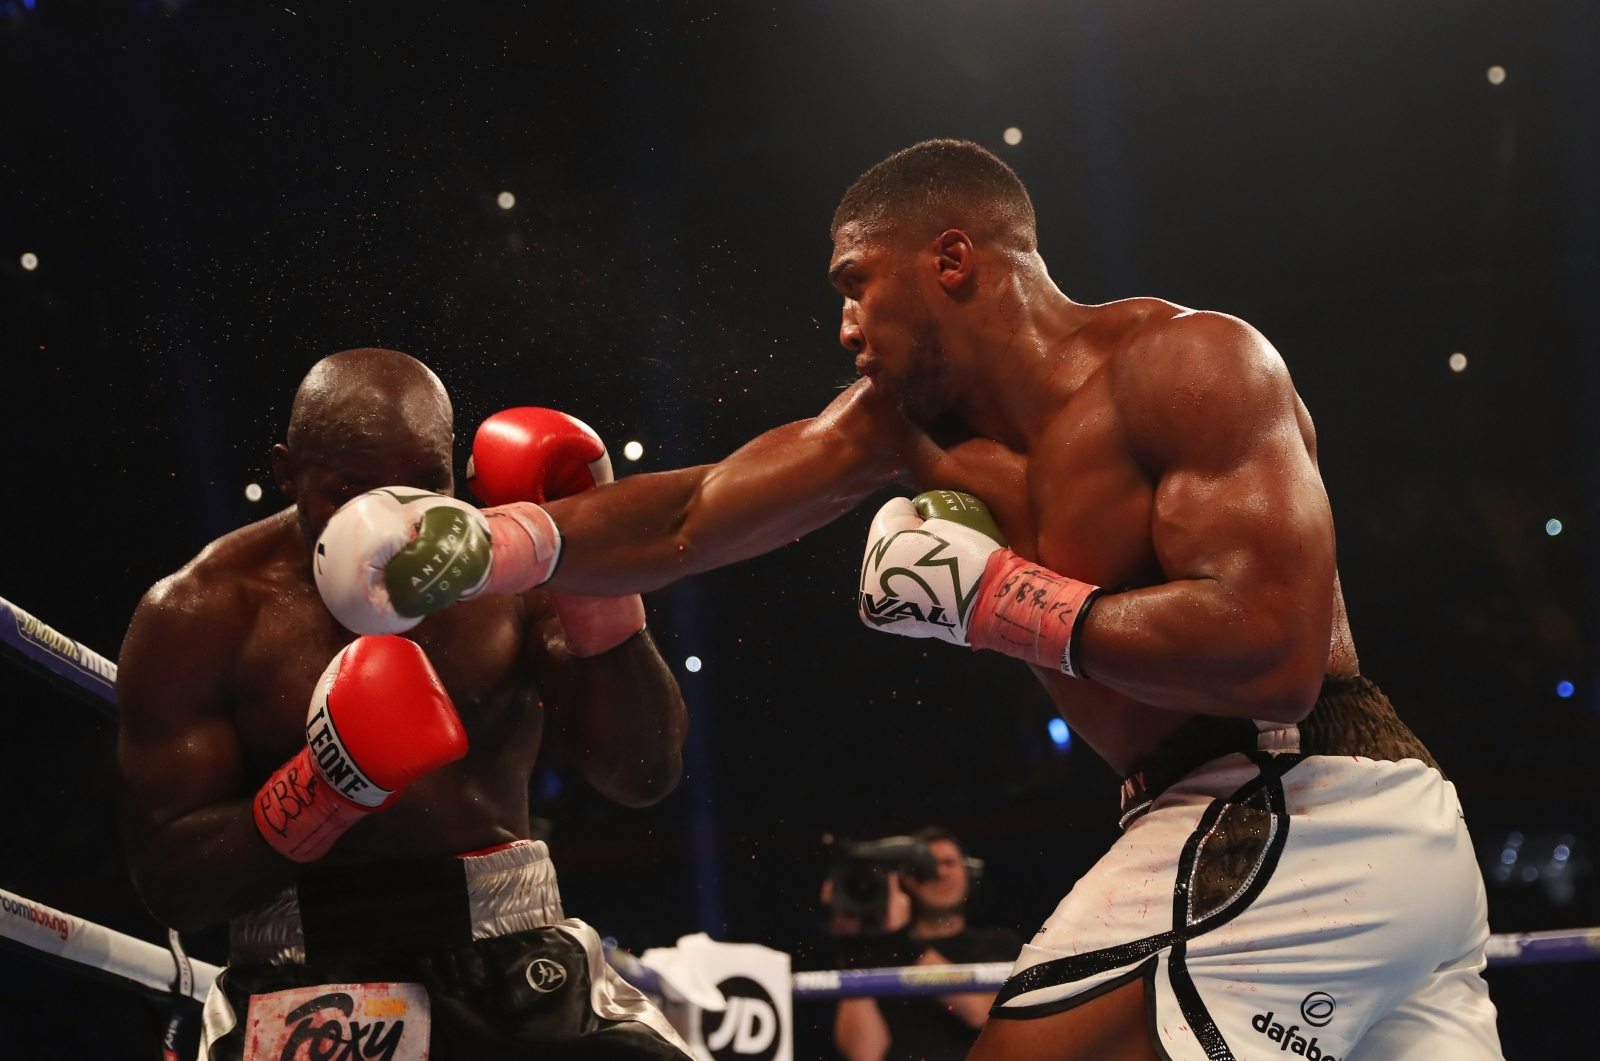 Joshua is avoiding me, claims Wilder